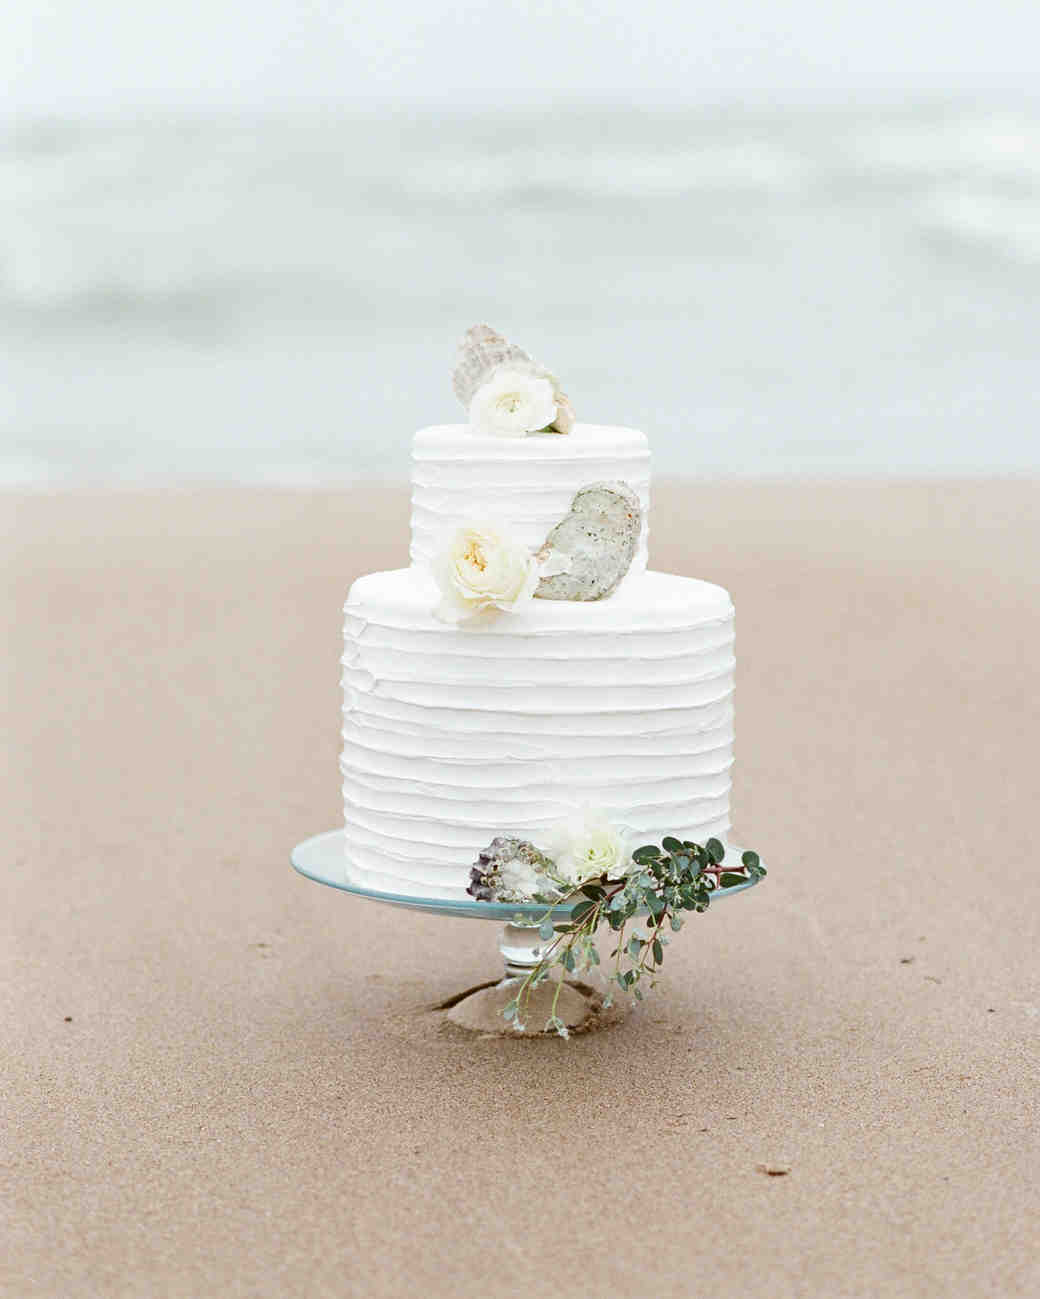 Ruffled Wedding Cake Decorated with Shells